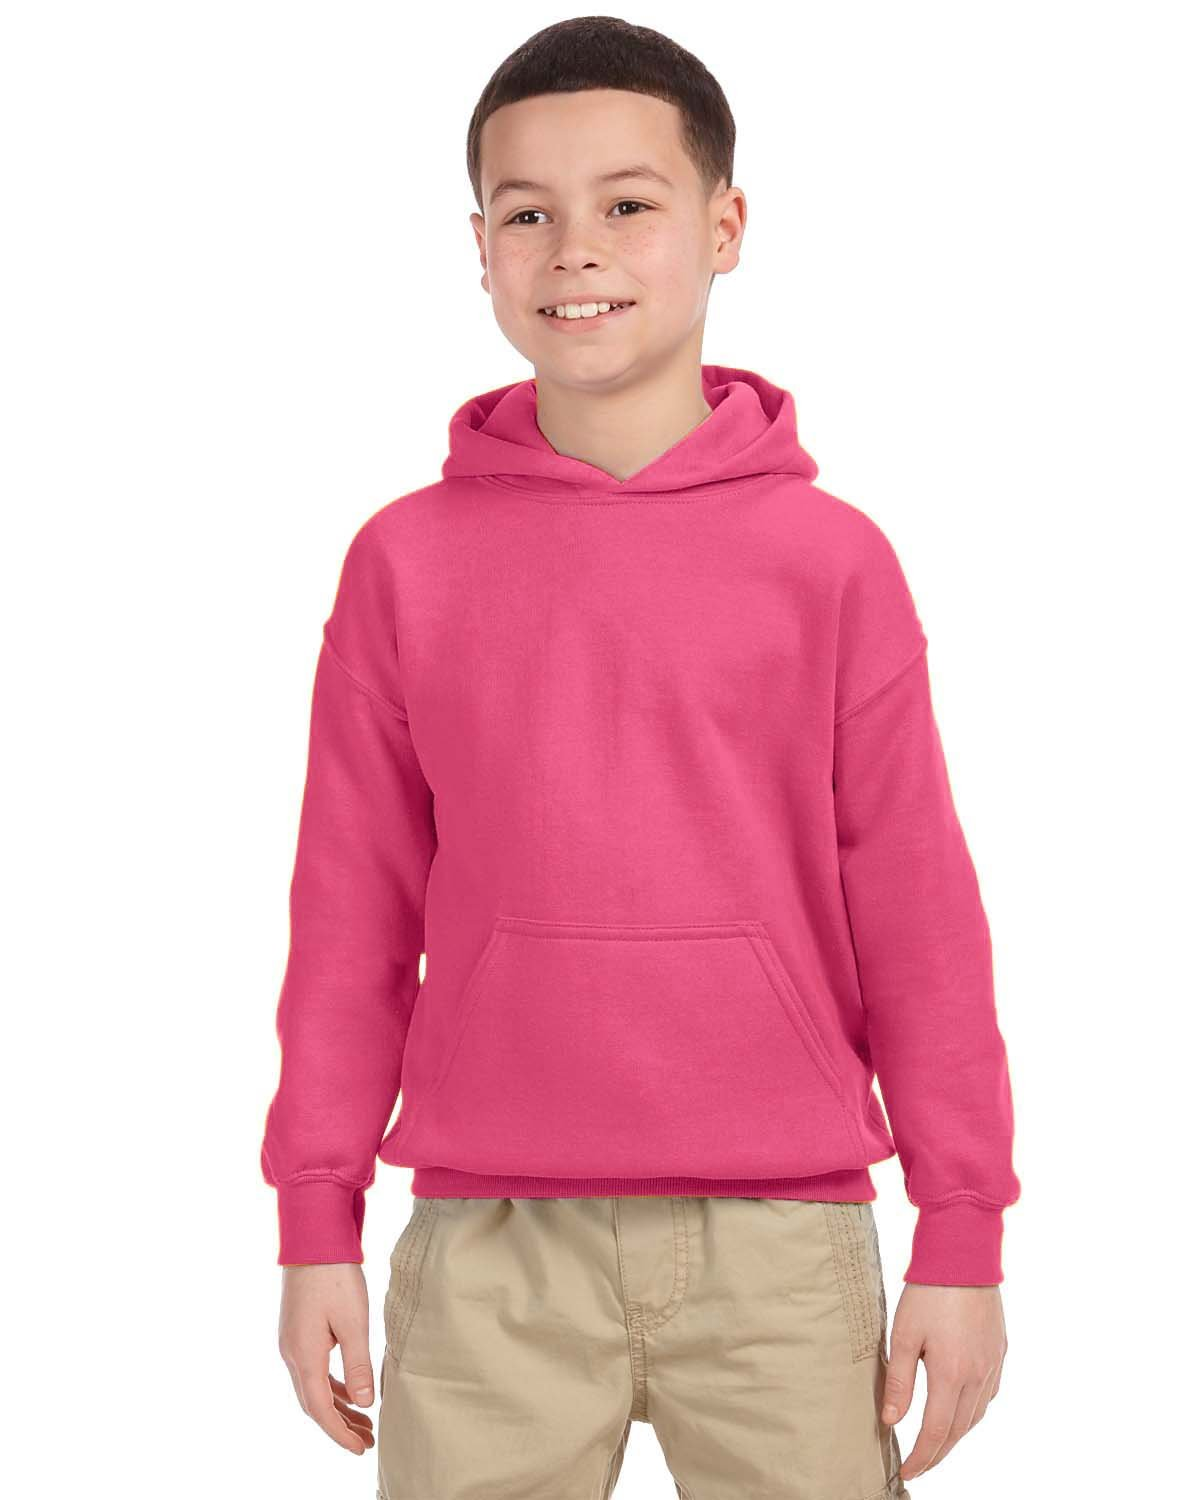 Gildan Youth Heavy Blend™ 50/50 Hooded Sweatshirt SAFETY PINK